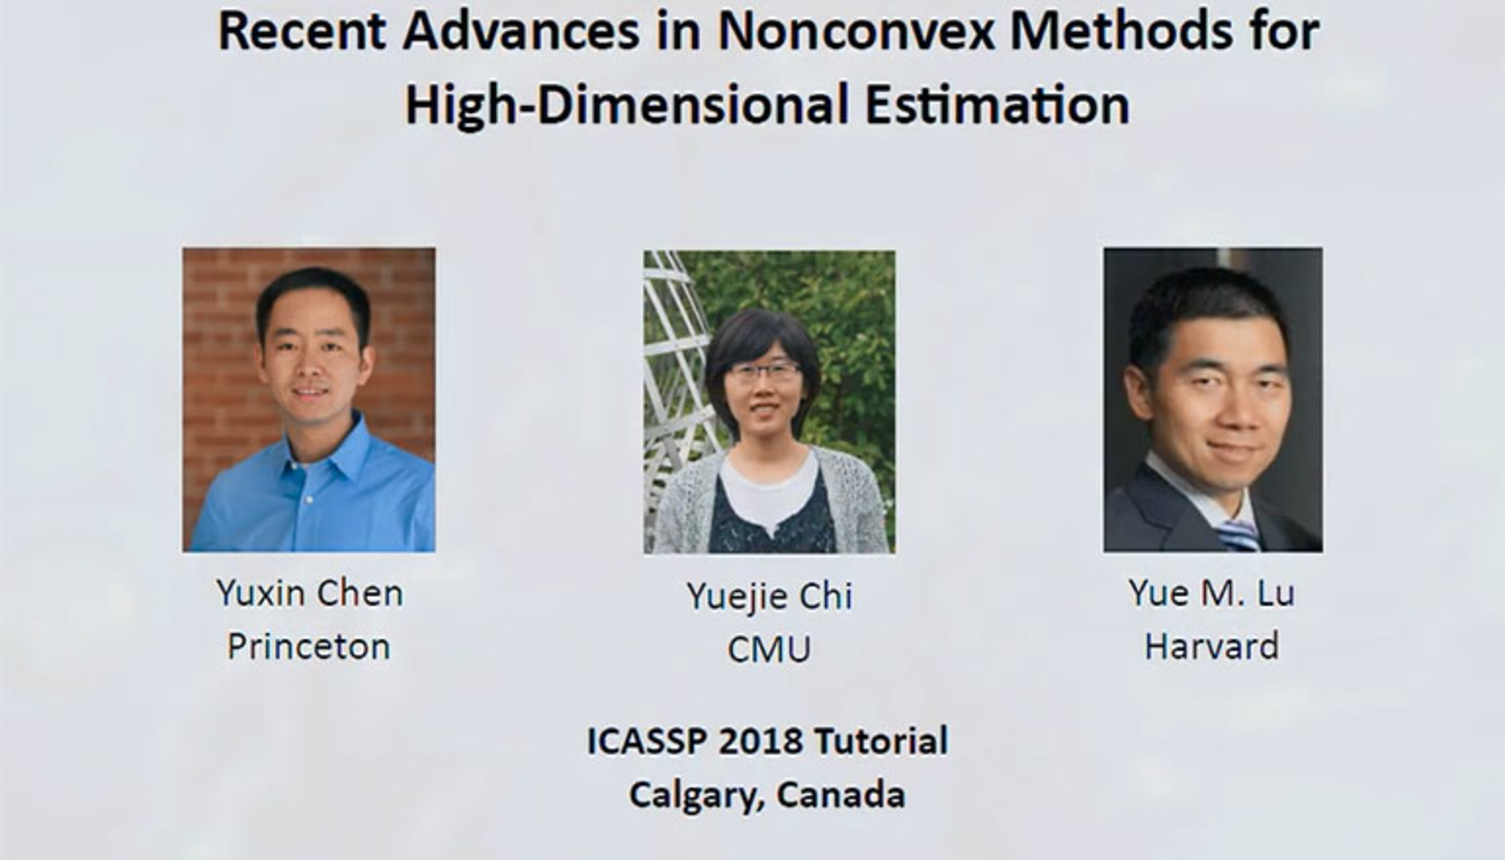 Tutorial 4 – Recent Advances in Nonconvex Methods for High-Dimensional Estimation